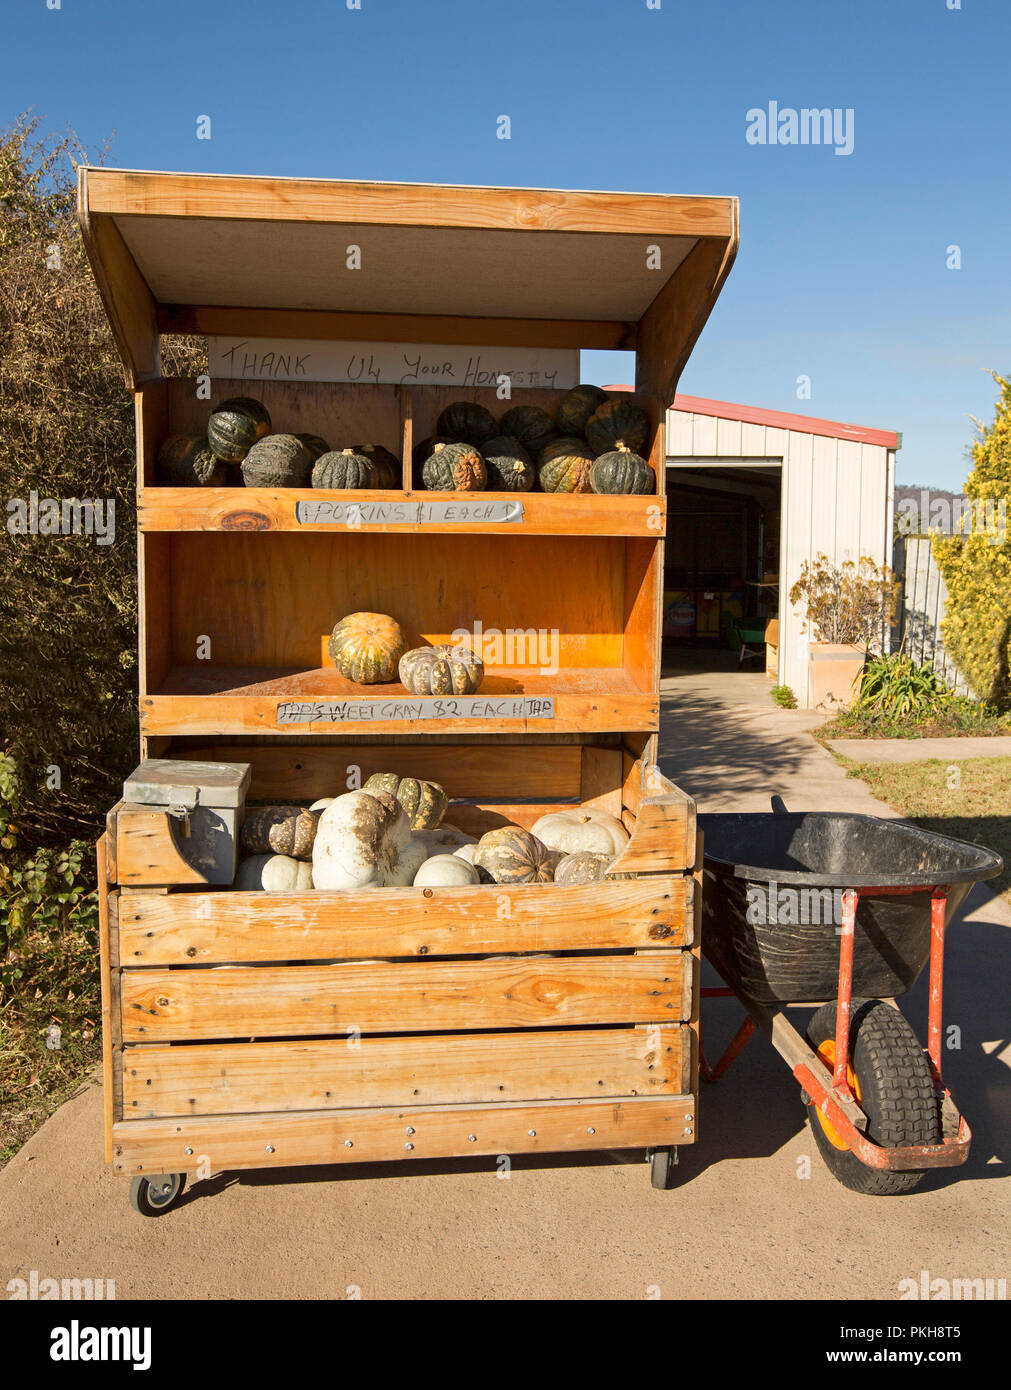 Pumpkins for sale atroadside stall with honesty box for payment at house in Australian rural town - Stock Image